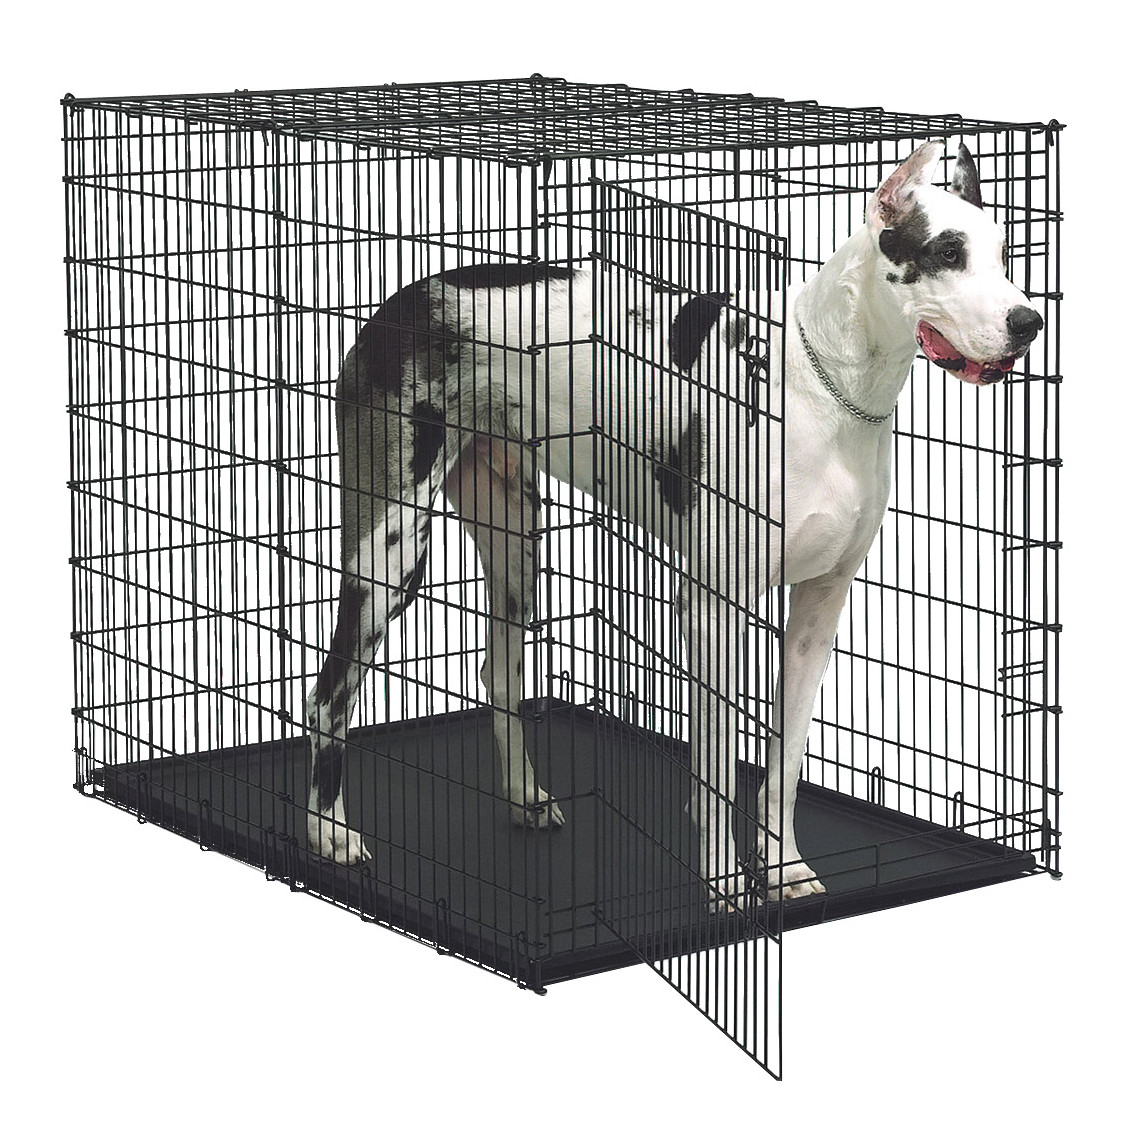 Midwest Life Stages Double-door Folding Metal Dog Crate | Midwest Dog Crates | Medium Dog Crate